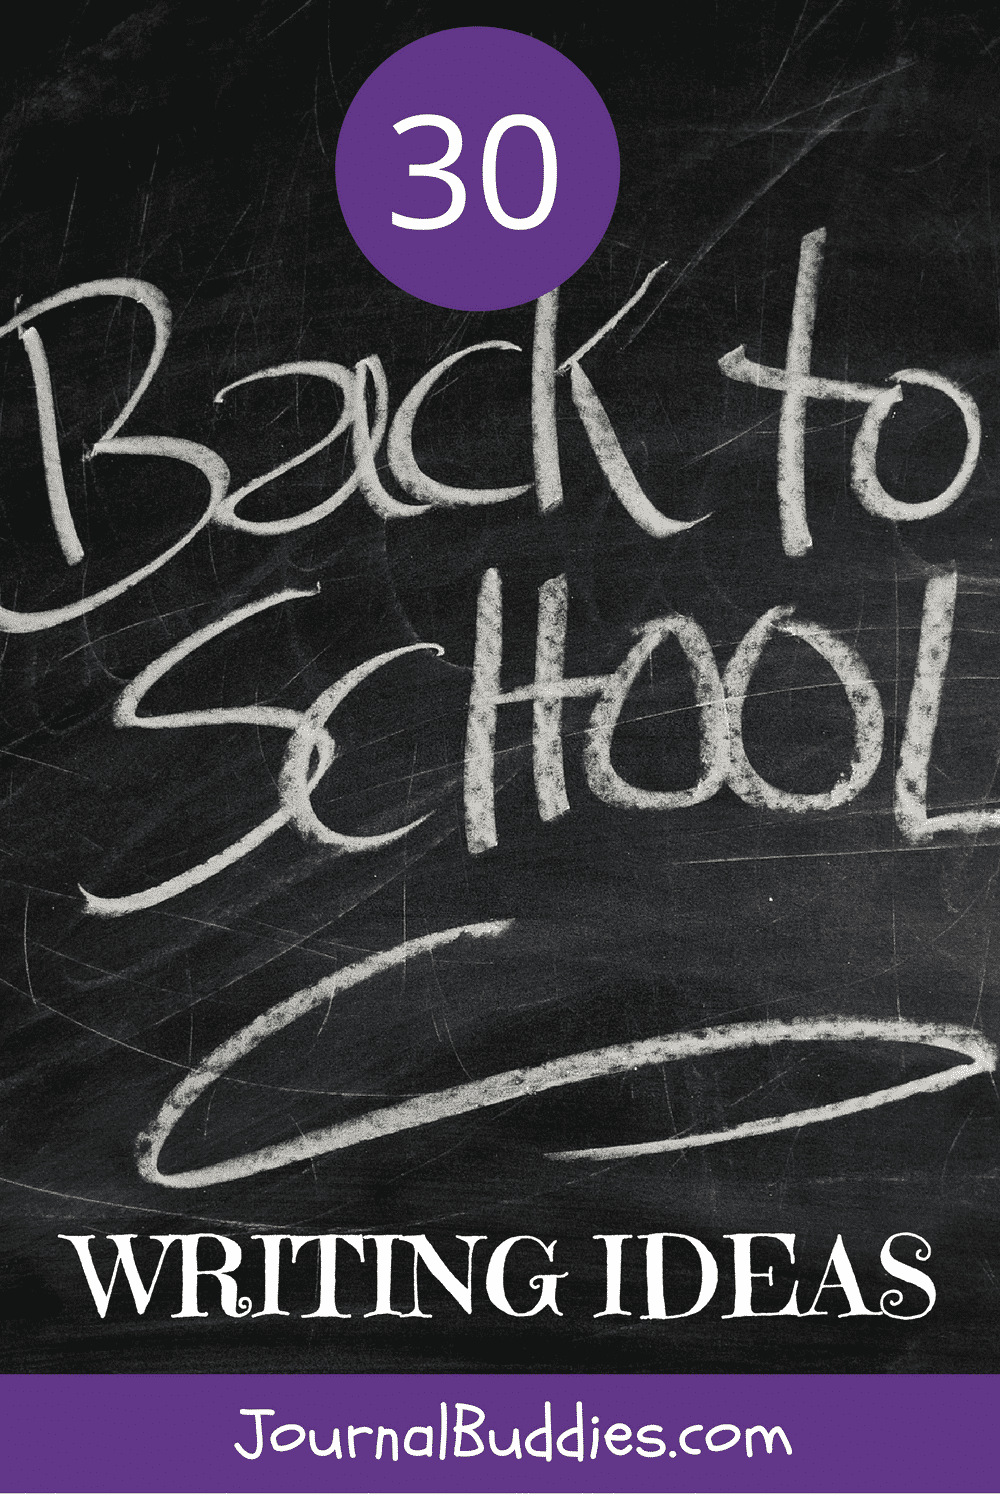 This list of back to school writing ideas for kids provides some guidance as to what to write about as they embark on a new school year.